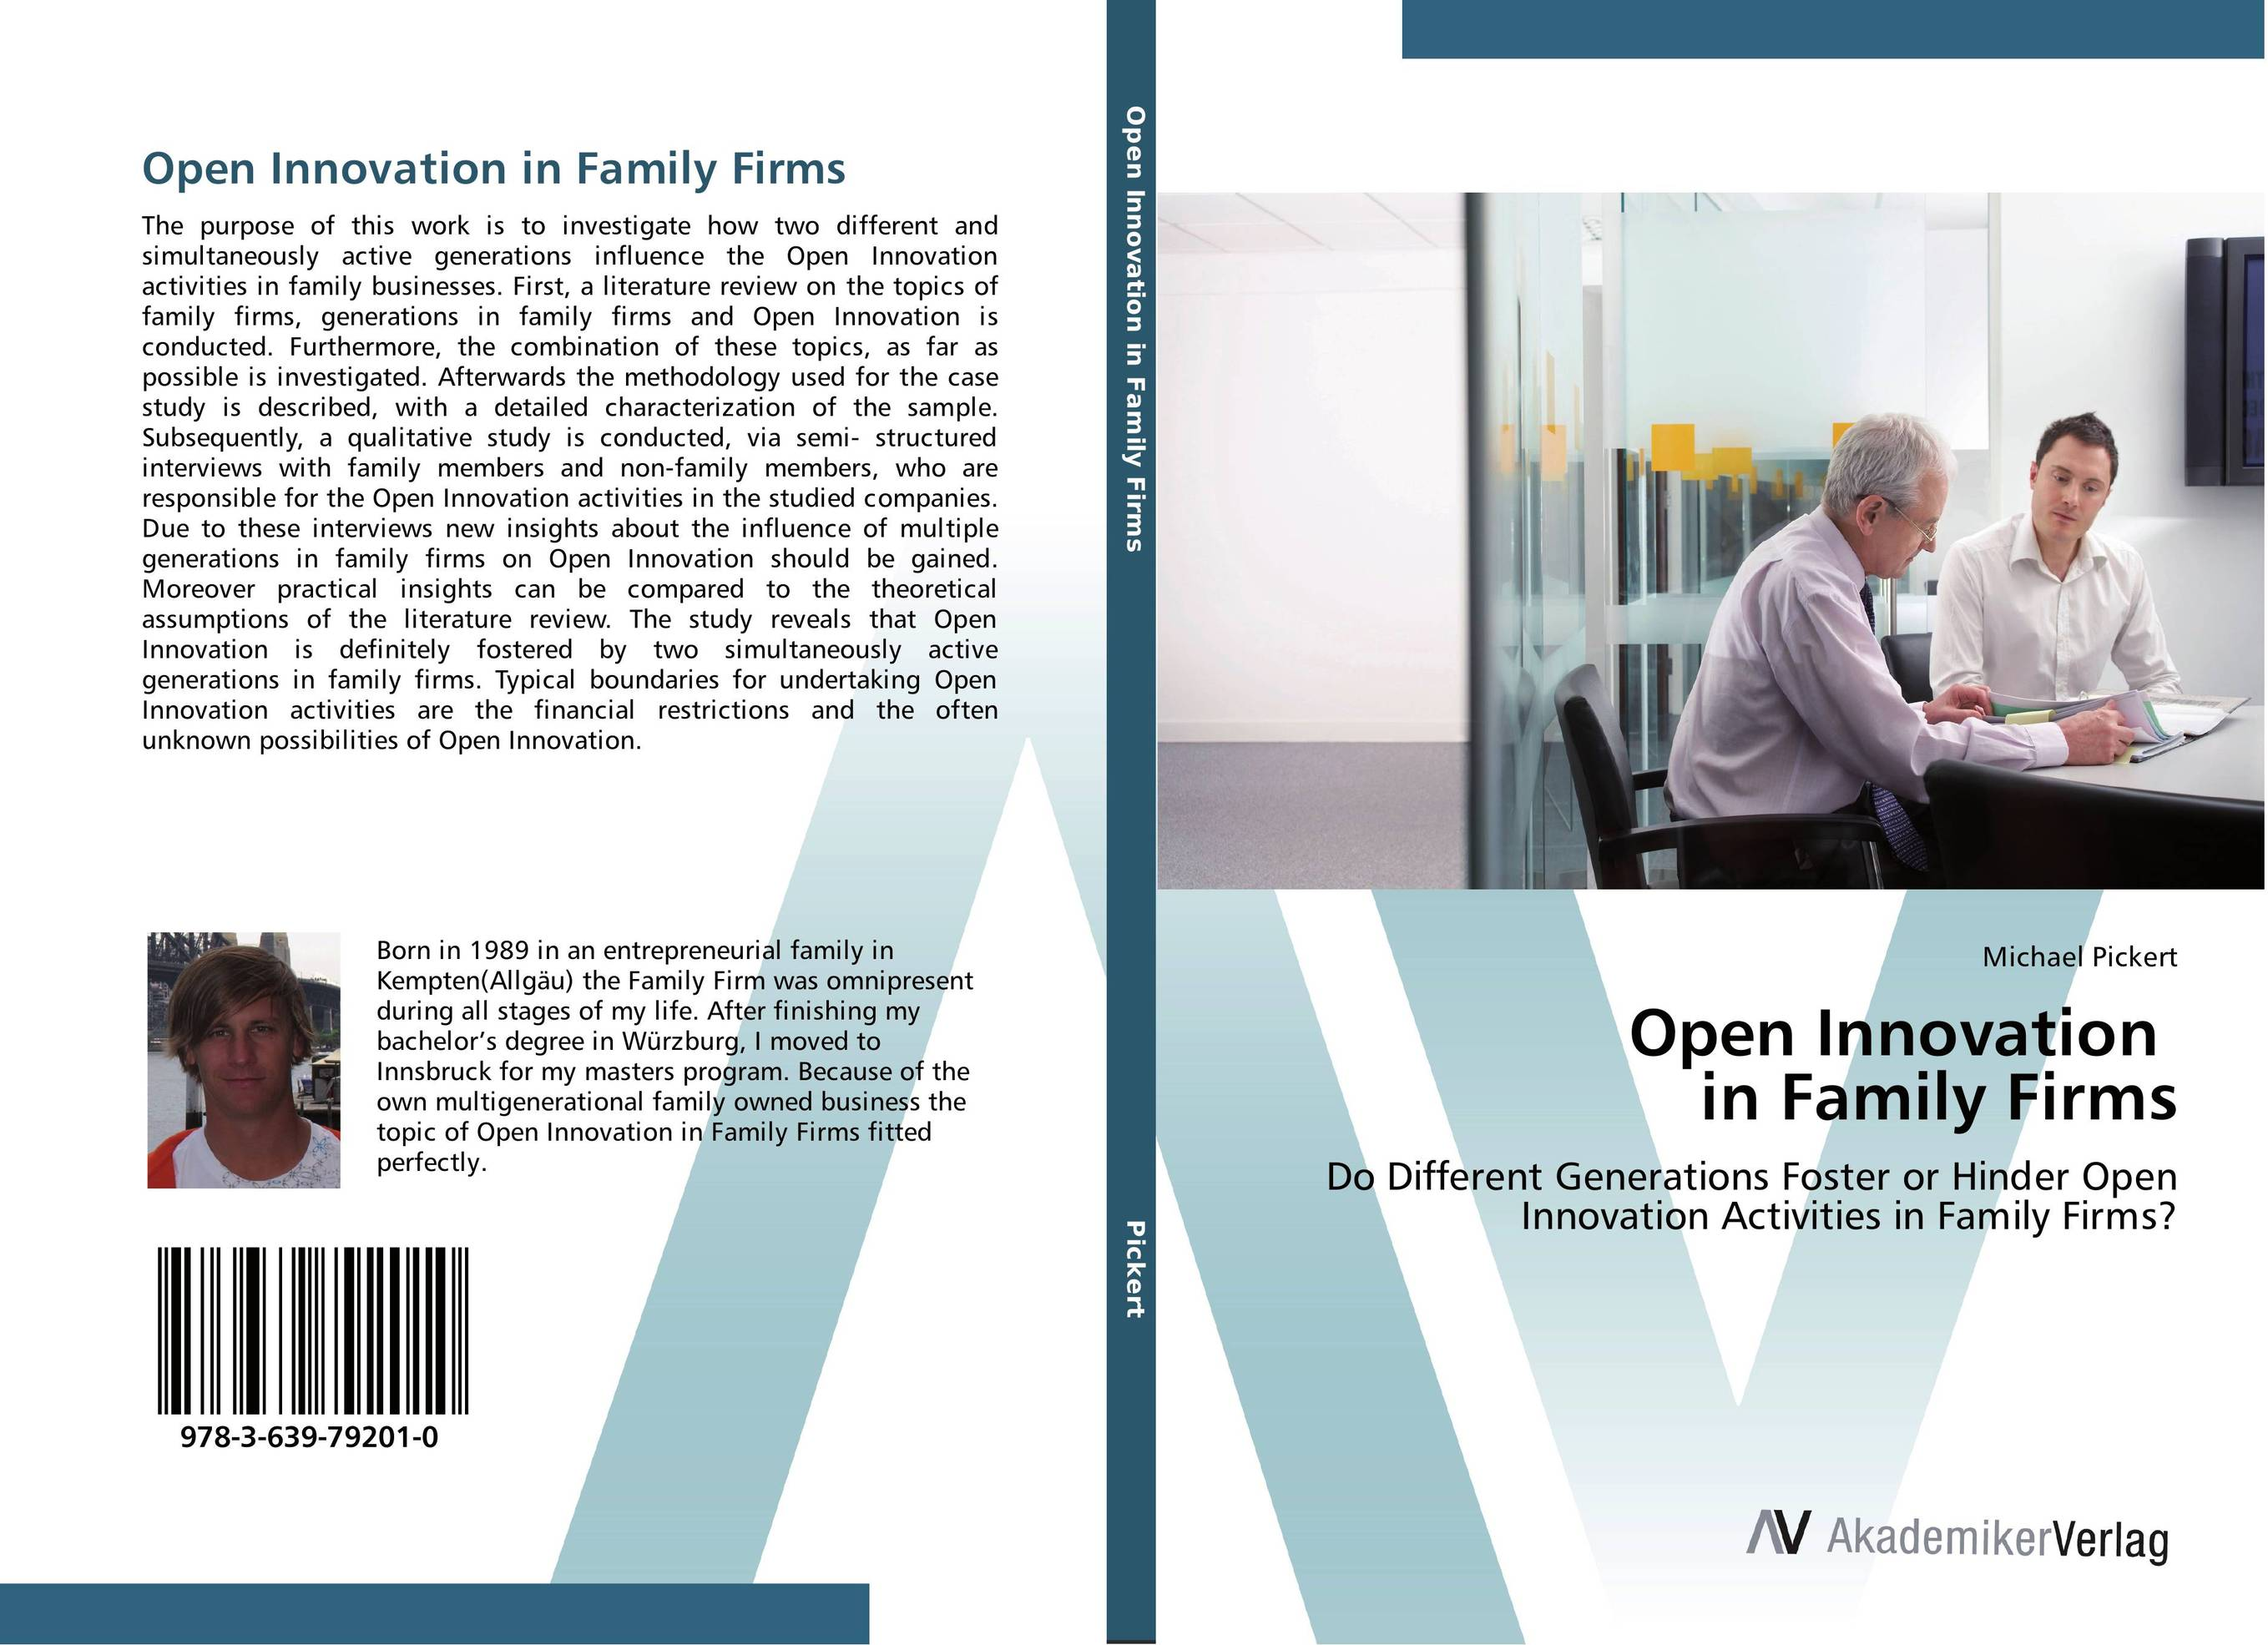 Open Innovation in Family Firms family caregiving in the new normal